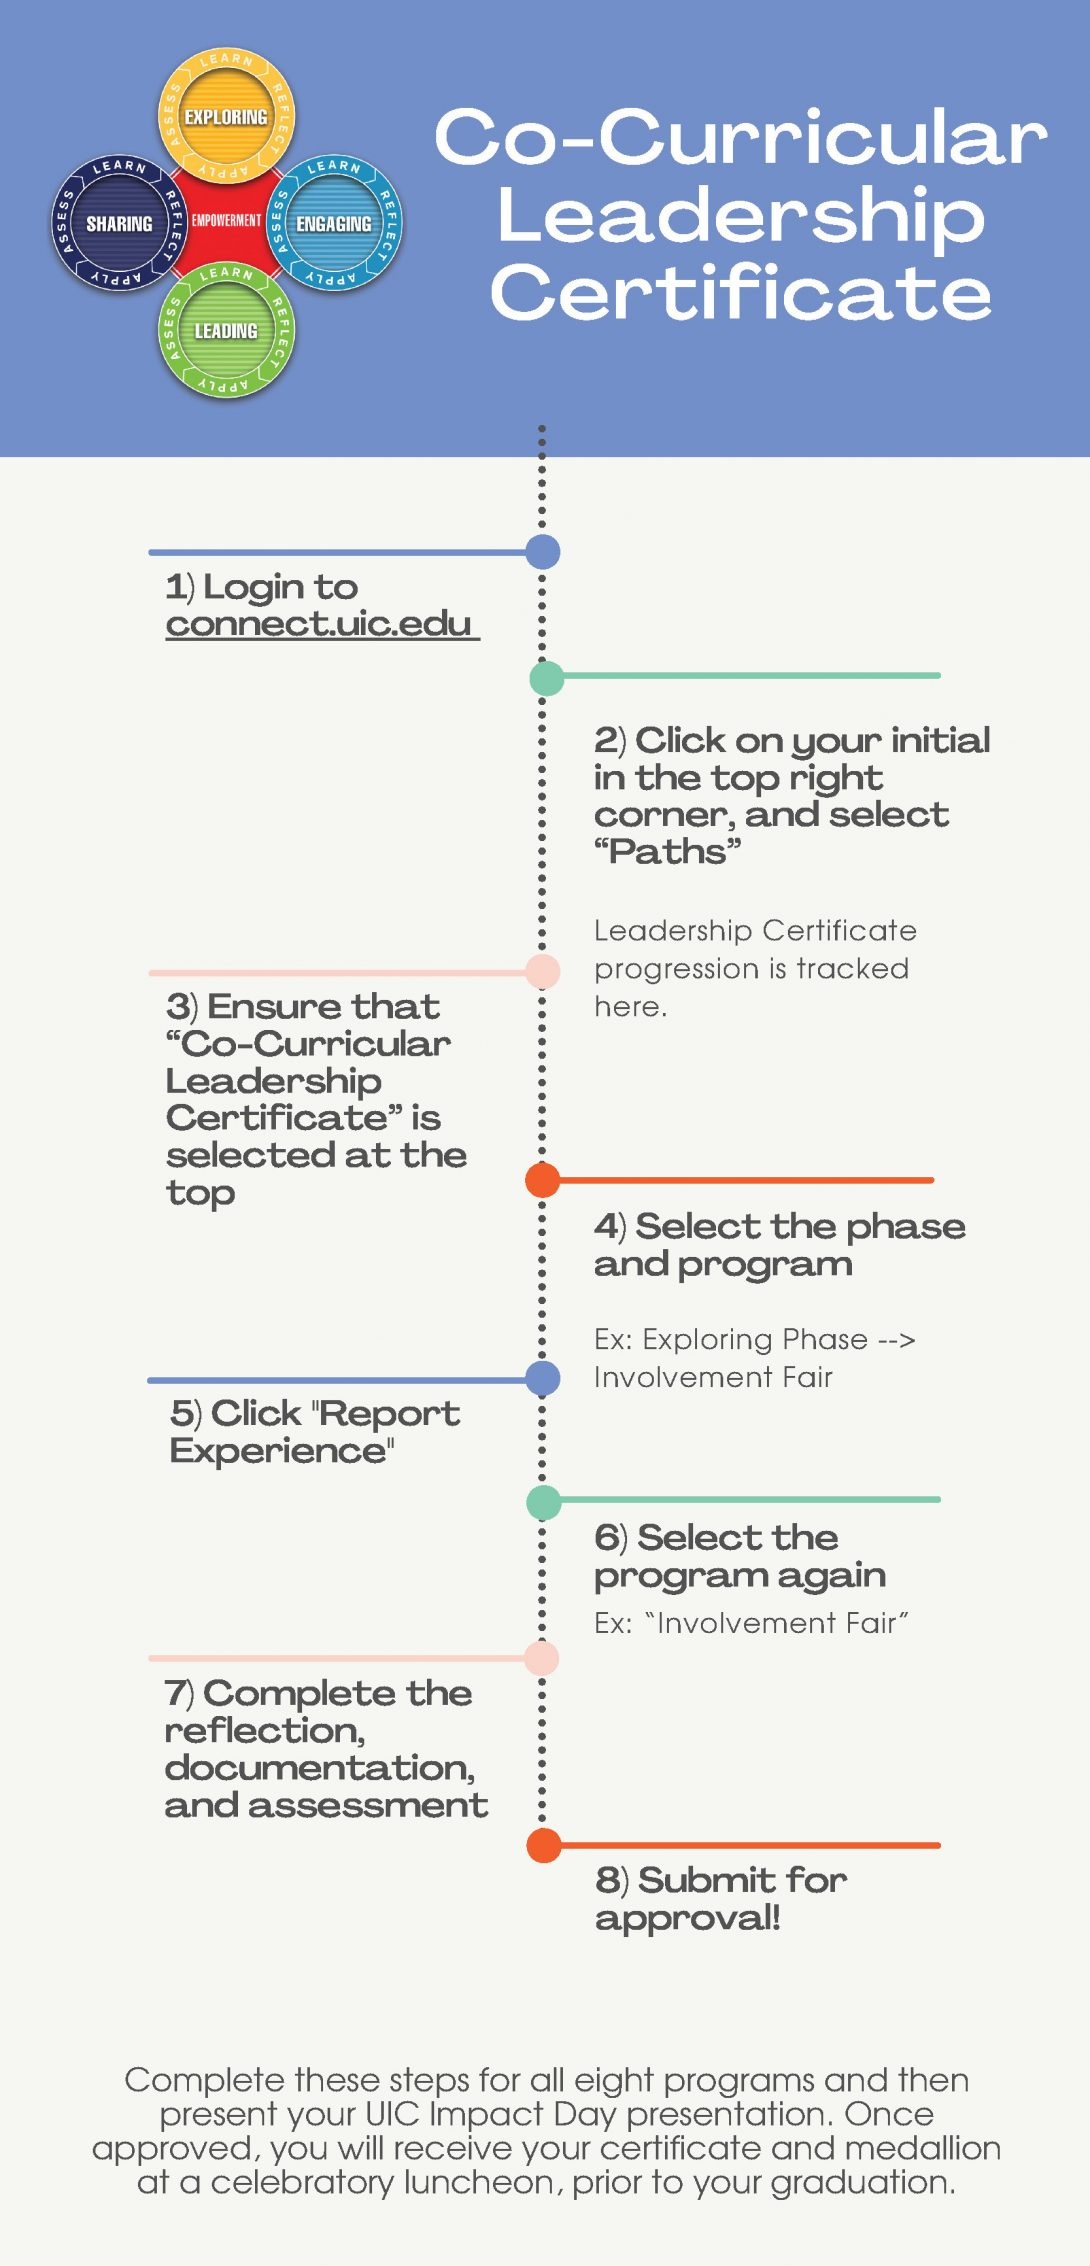 """Co-Curricular Leadership Certificate title with steps to track progress outlined in infographic. 1-Login to connect.uic.edu. 2-Click on your initial in the top right corner, and select """"Paths."""" Leadership Certificate progression is tracked here. 3-Ensure """"Co-Curricular Leadership Certificate"""" is selected at the top. 4-Select the phase and program (Ex: Exploring Phase -> Involvement Fair). 5-Click """"Report Experience."""" 6-Select the program again (Ex: Involvement Fair). 7-Complete the reflection, documentation, and assessment. 8-Submit for approval. Complete these steps for all eight programs and then present your UIC Impact Day presentation. Once approved, you will receive your certificate and medallion at a celebratory luncheon, prior to your graduation."""